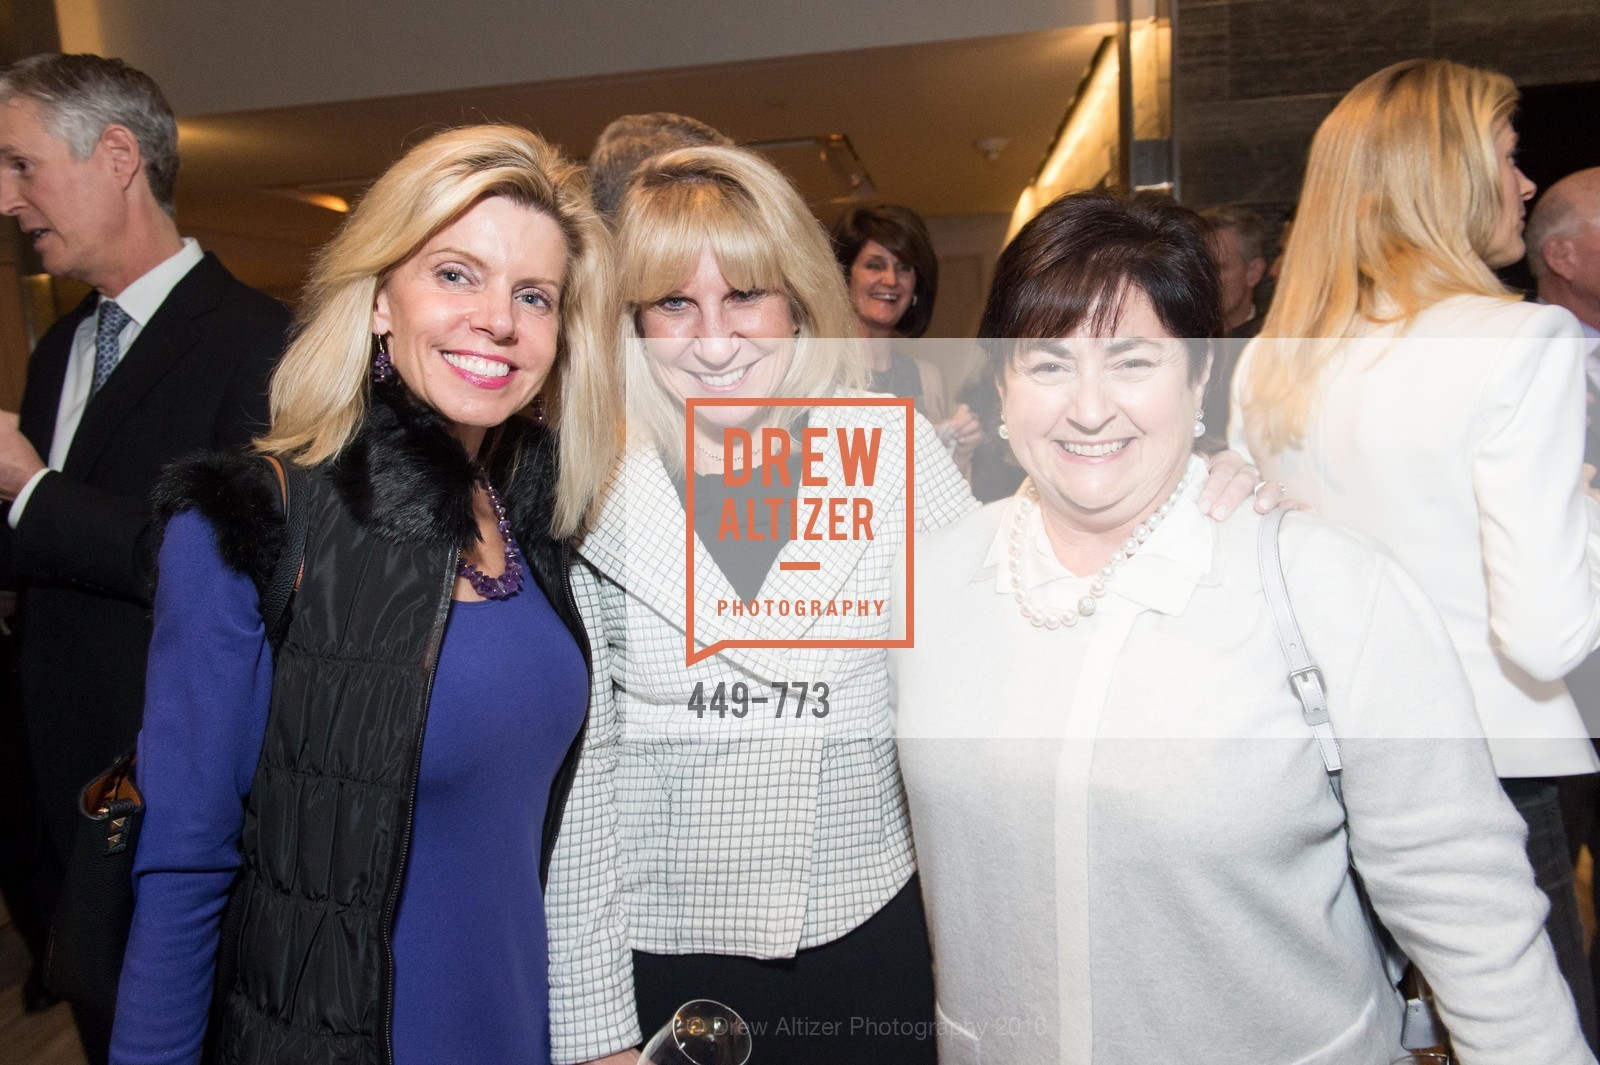 Mary Fenton, Kathy Korte, Janet Schindler, Sotheby's International Realty's Celebrates the New Year, The Battery, Penthouse. 717 Battery St, January 27th, 2016,Drew Altizer, Drew Altizer Photography, full-service agency, private events, San Francisco photographer, photographer california